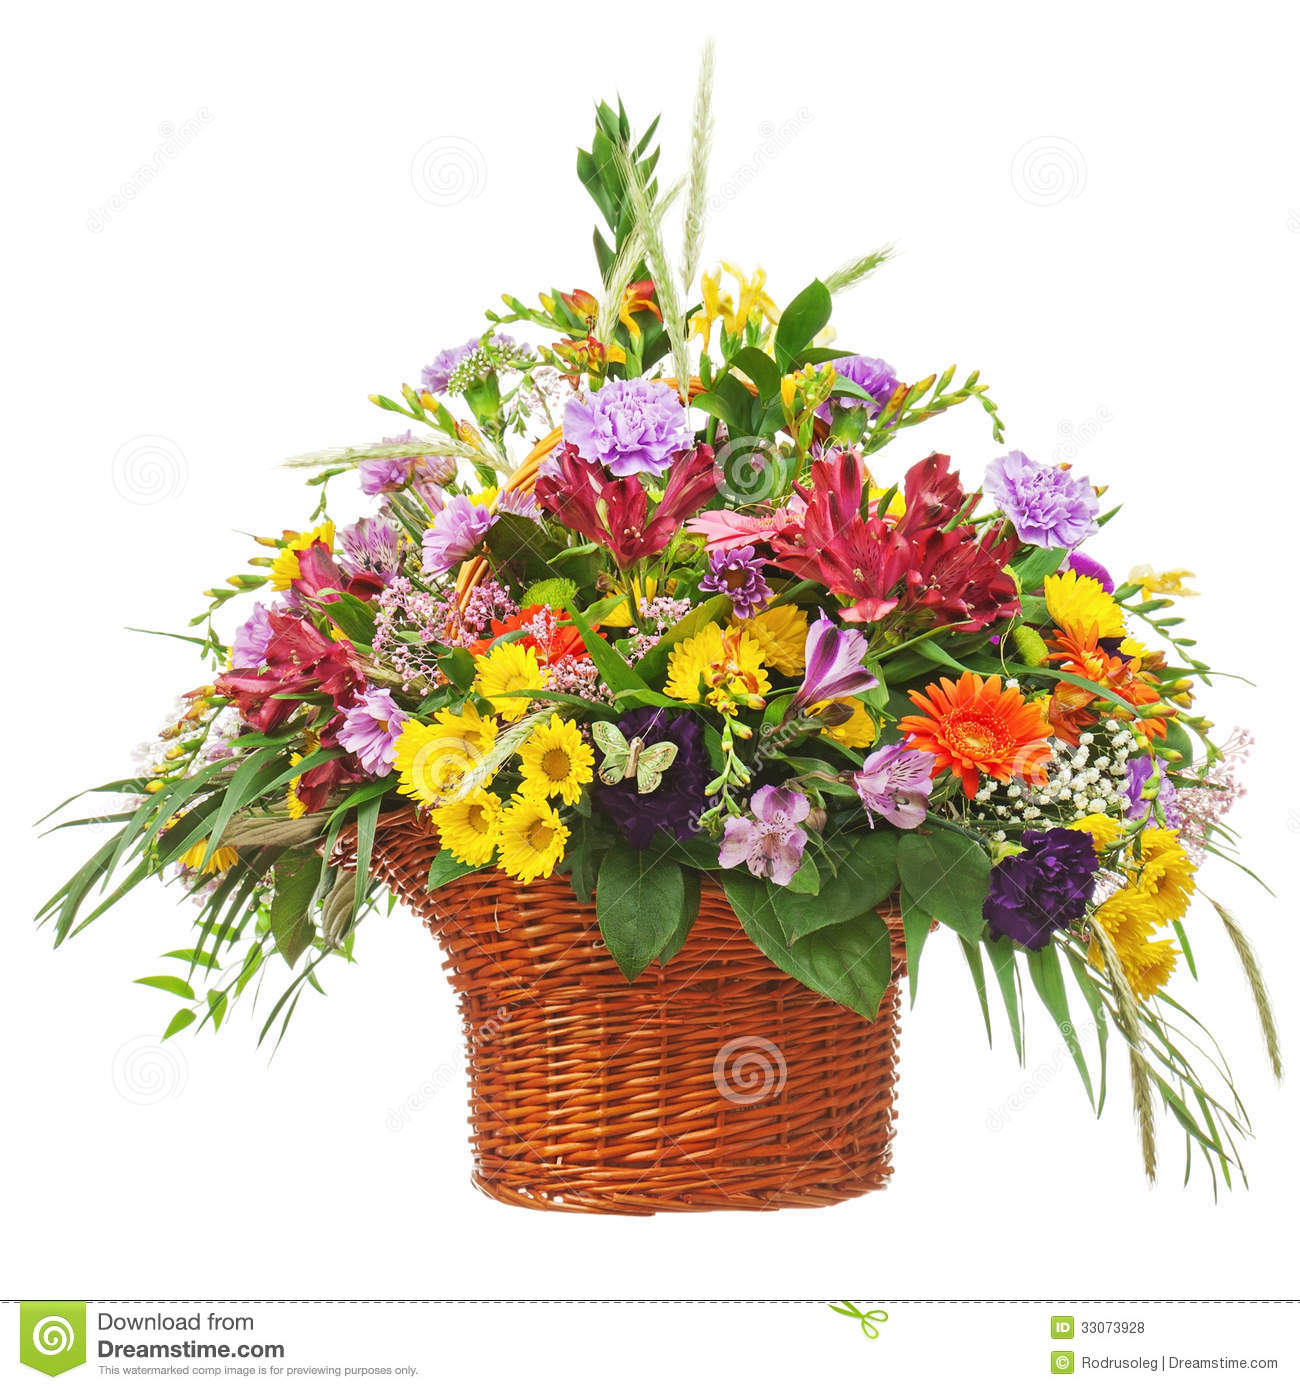 Flower Basket Arrangements Pictures : Flower bouquet arrangement centerpiece in wicker basket